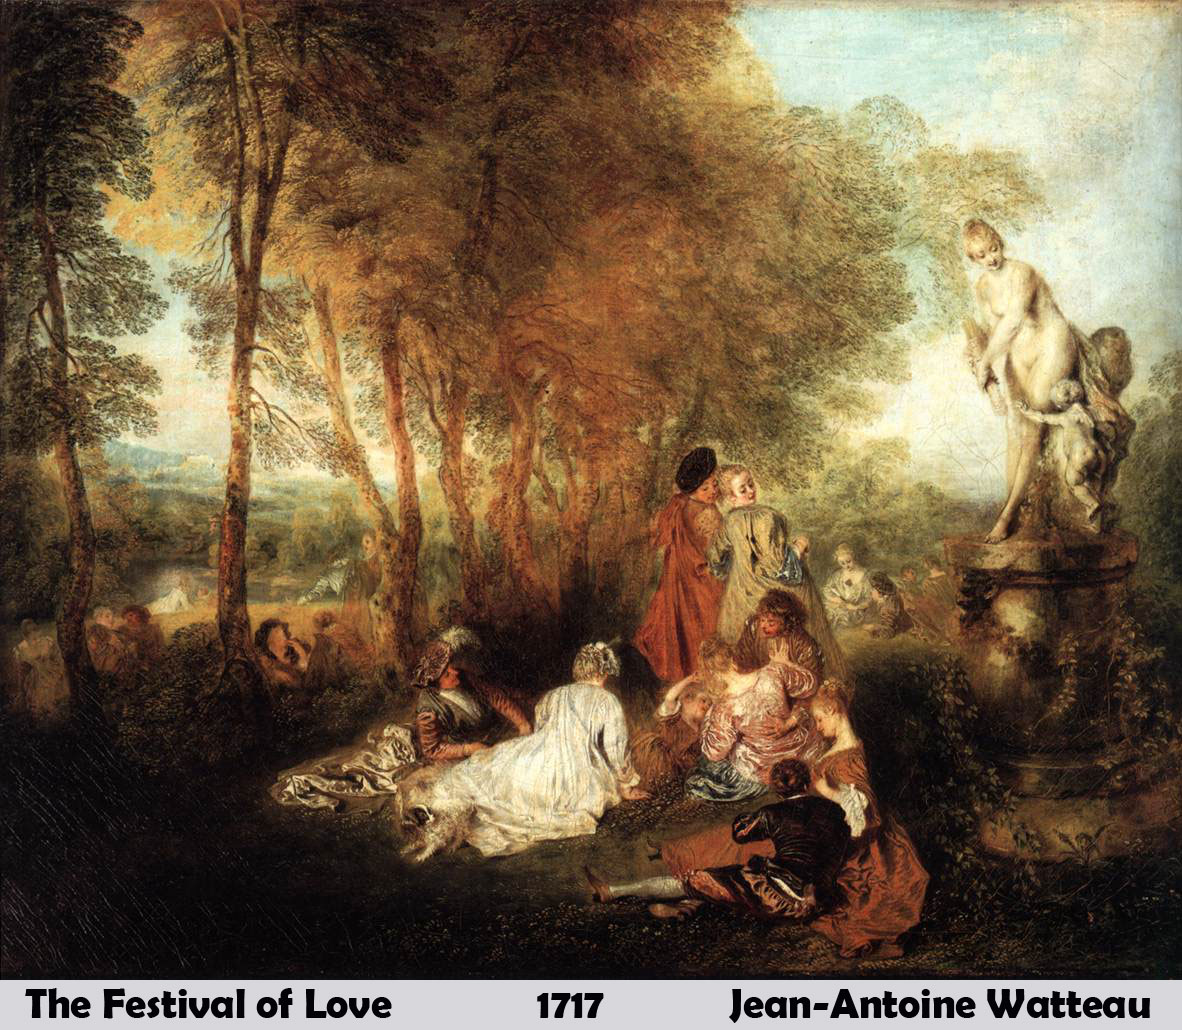 The Festival of Love by Jean Antoine Watteau